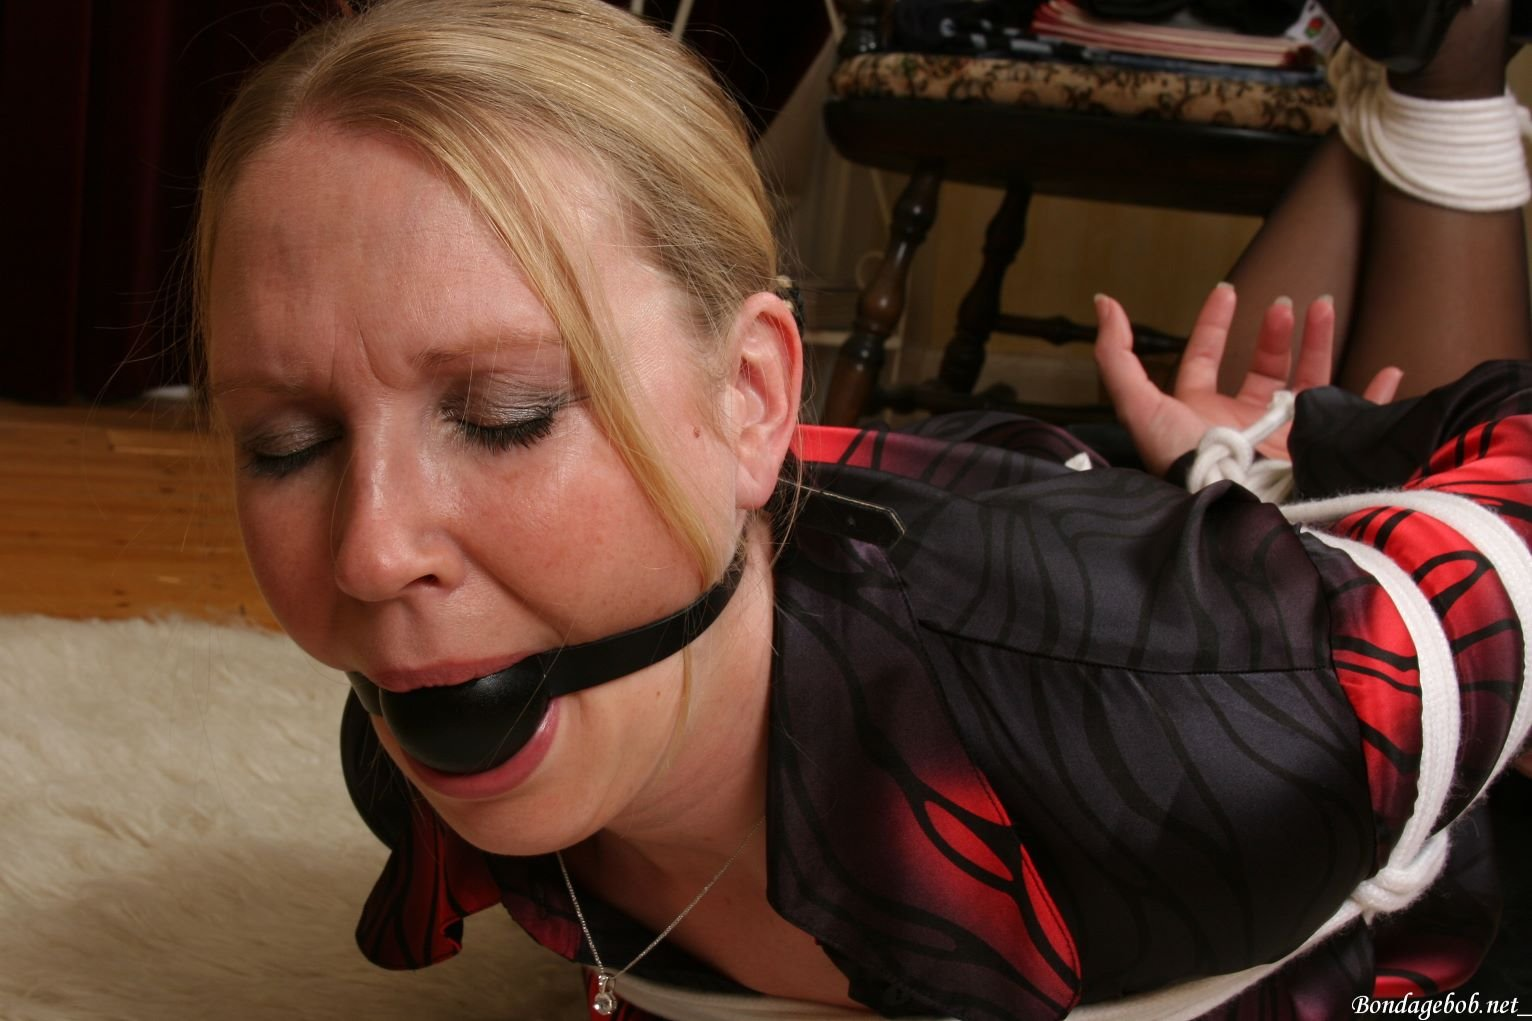 Imag of pretty middle-age woman ball gagged and bound